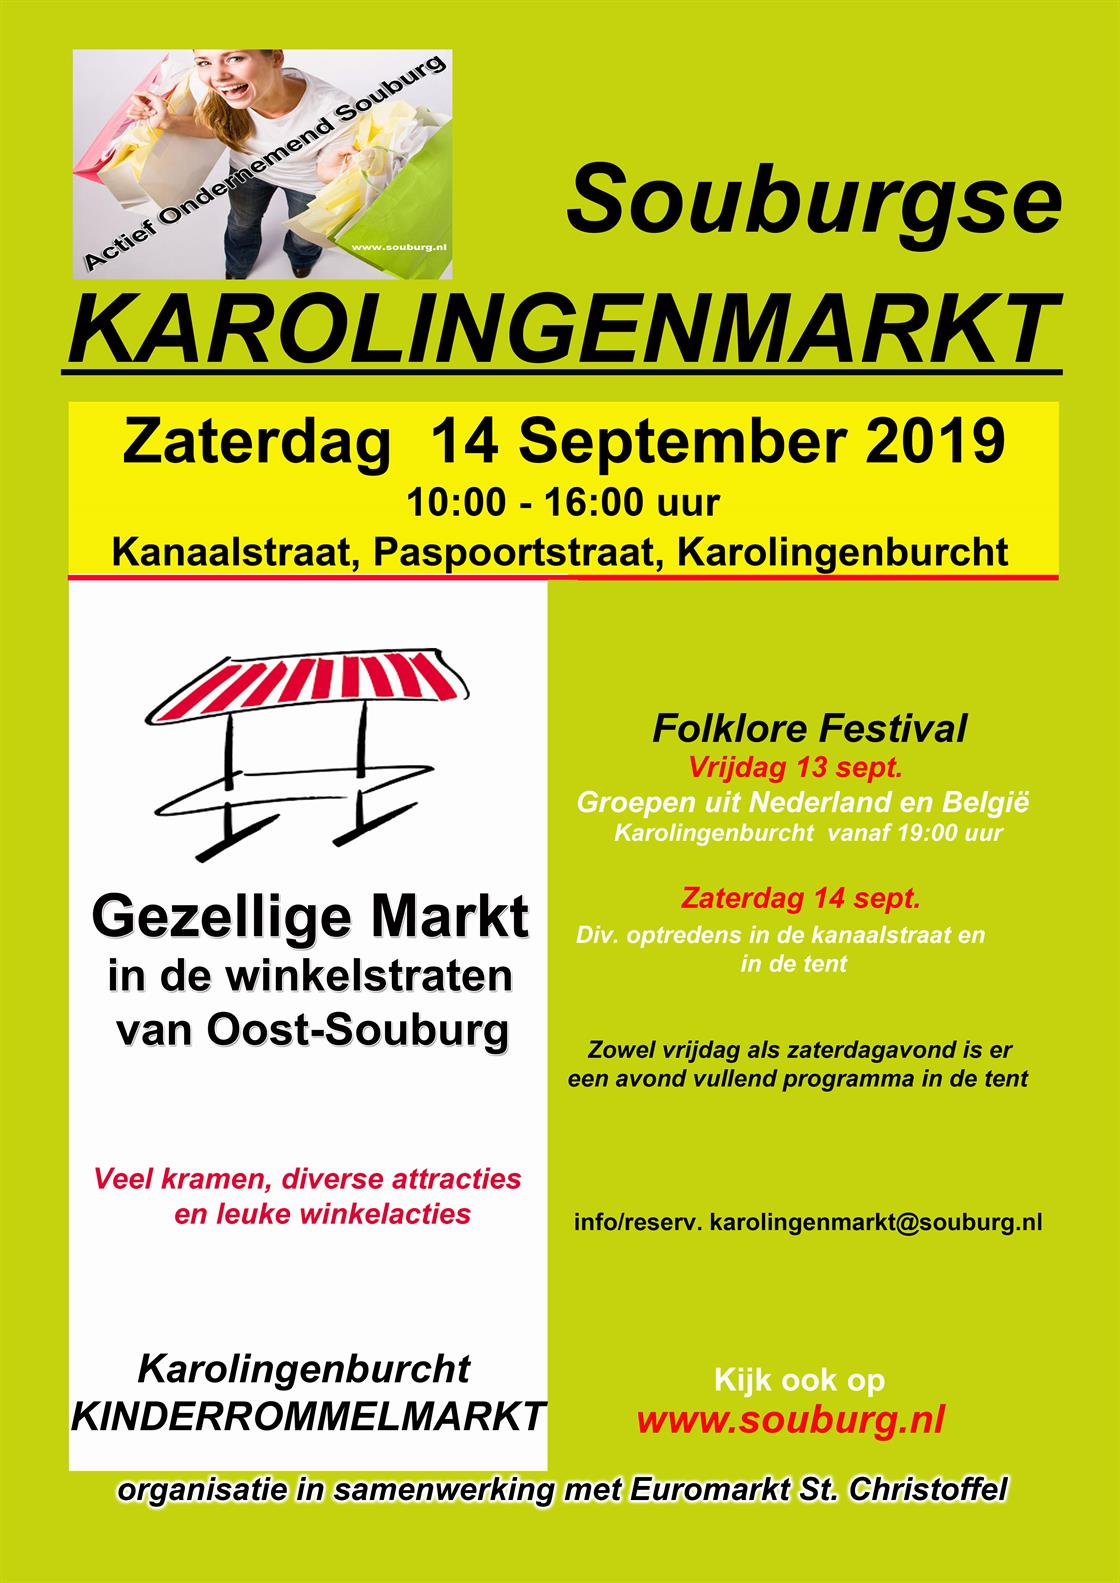 Karolingenmarkt SEPTEMBER in Oost-Souburg